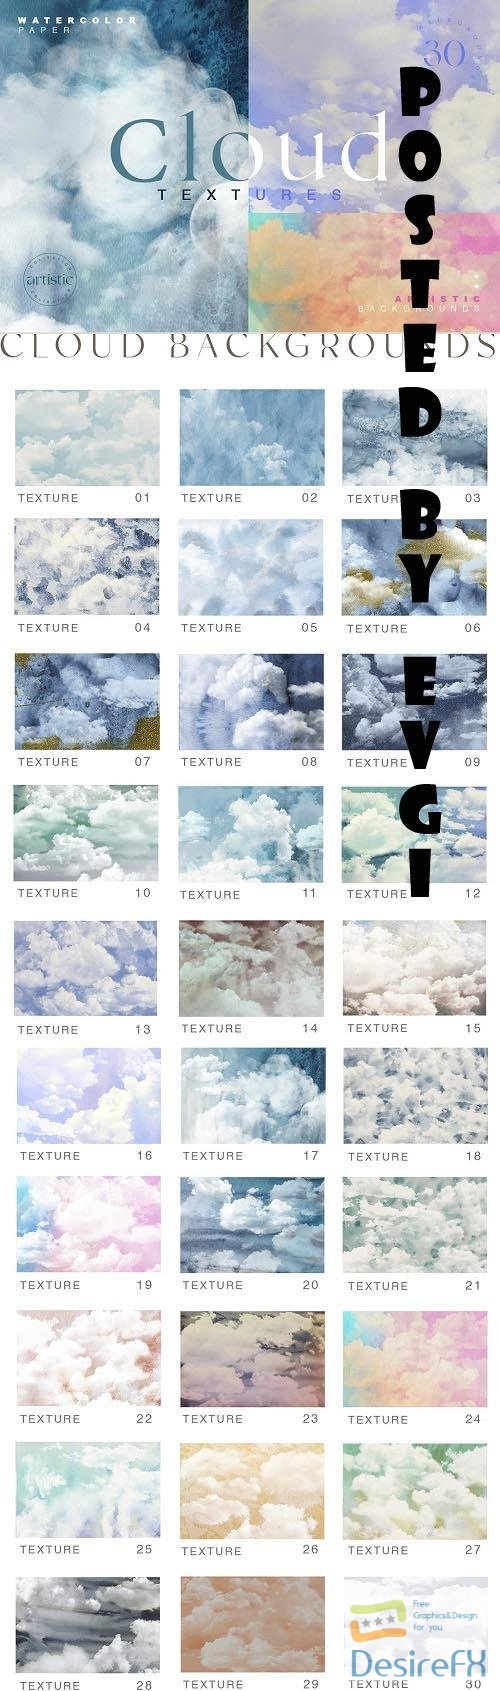 Cloudy Watercolor Abstract Textures - 6561479